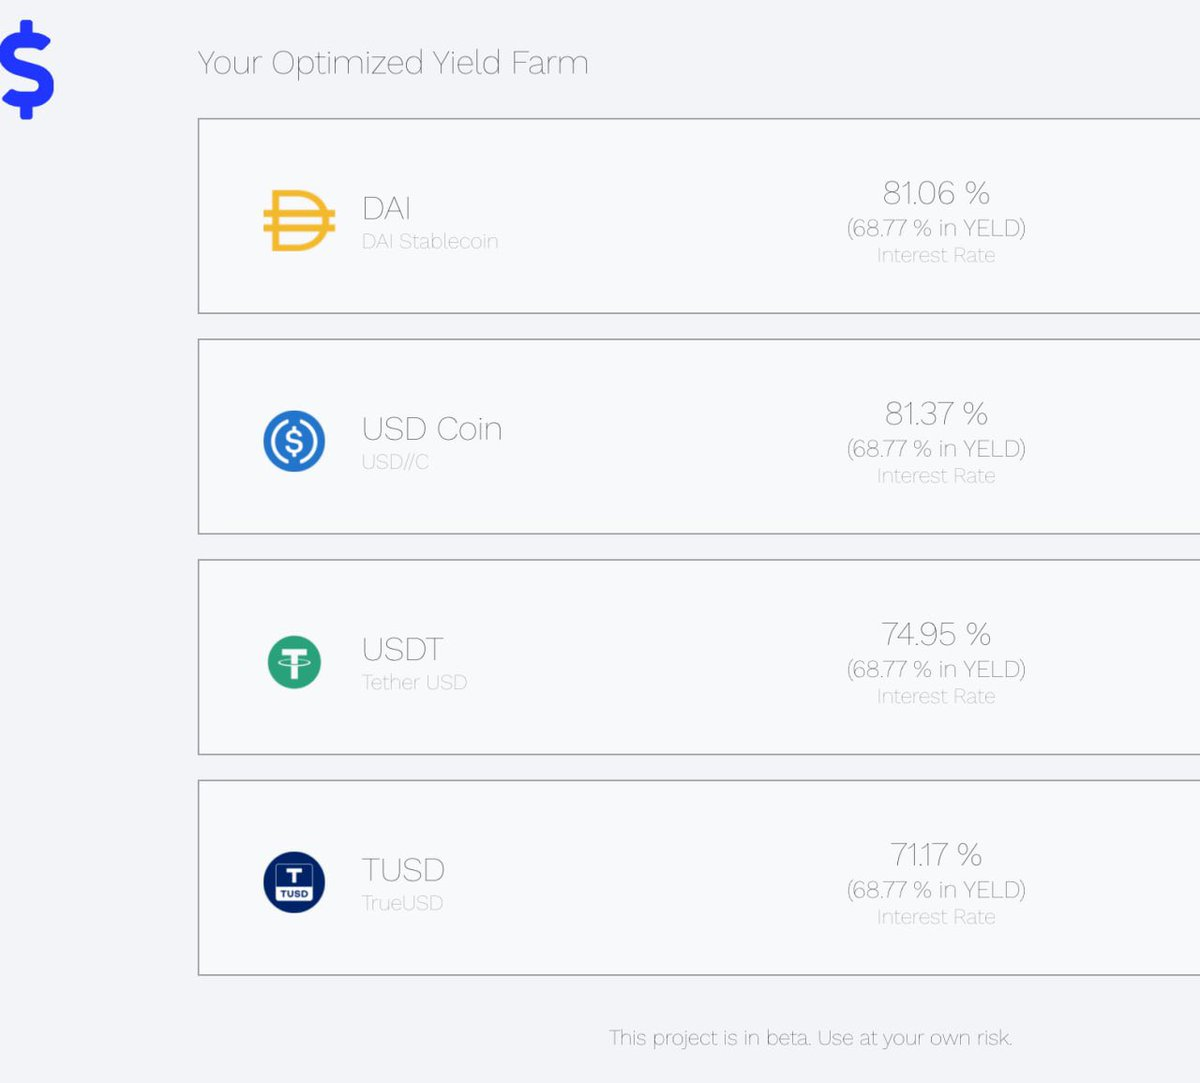 Sneak peek at the $YELD #APY on stablecoins. A higher valuation of $YELD means a higher APY on your stablecoins. So much more to come; the future at $YELD is bright @YeldF 👀 Don't sleep on this project 😴